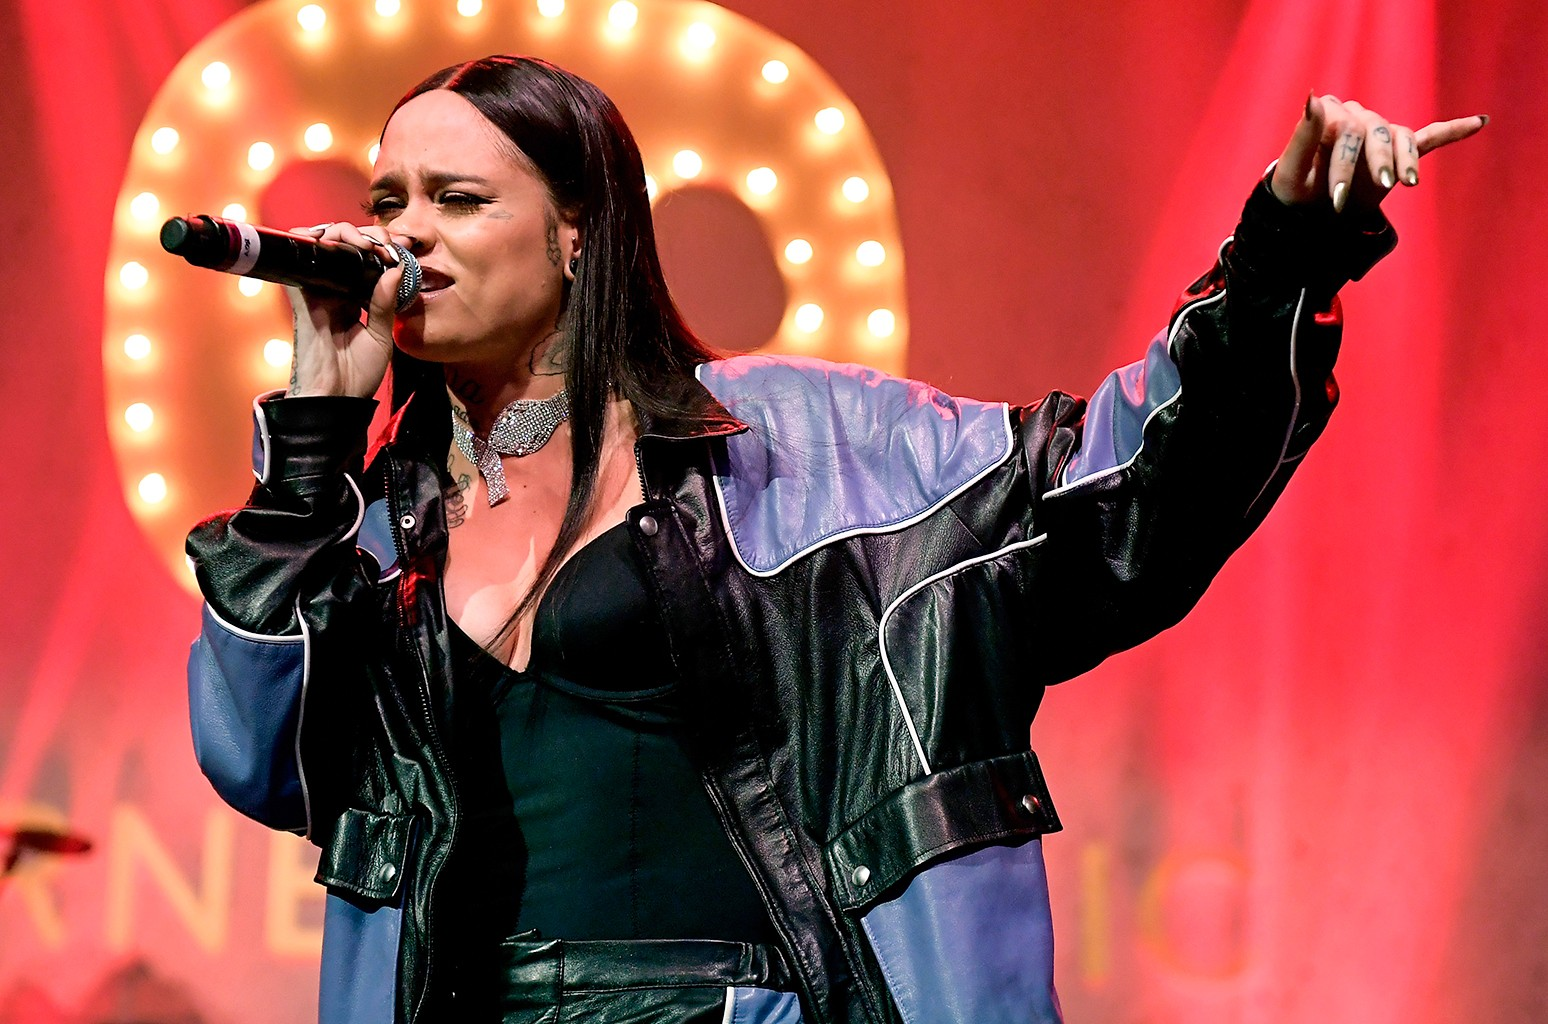 Kehlani performs at the Warner Music Group Grammy Party at Milk Studios on Feb. 12, 2017 in Hollywood, Calif.